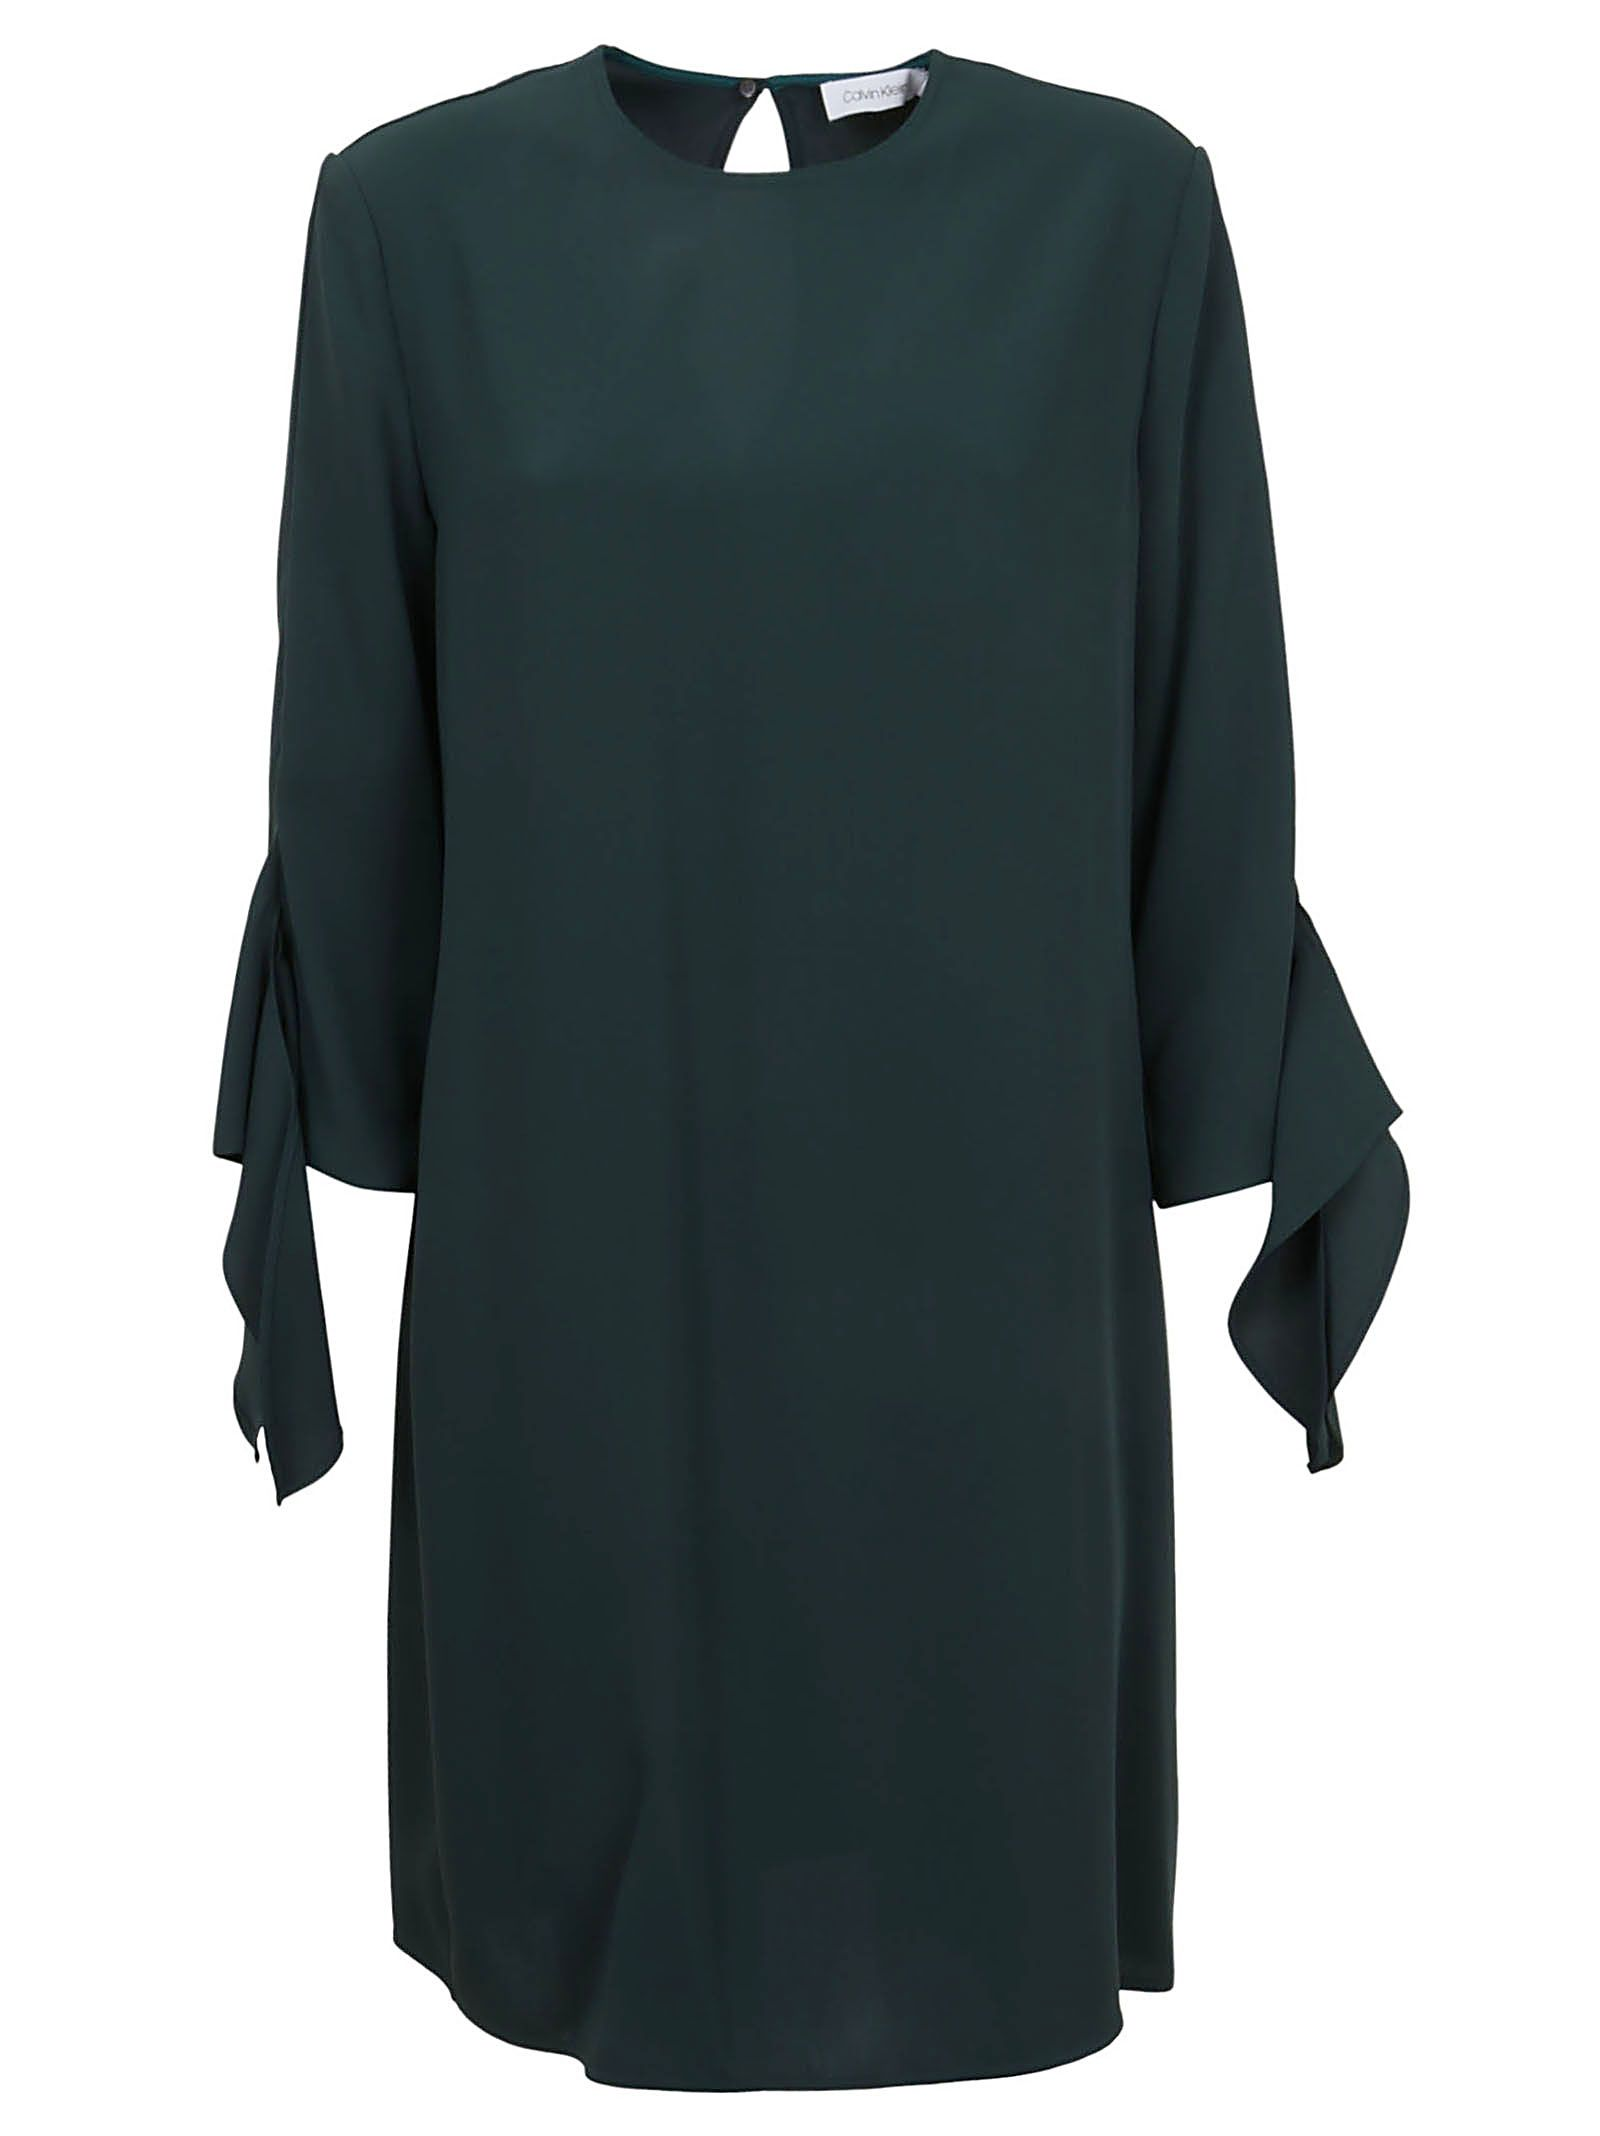 Calvin Klein Green Cotton Dress